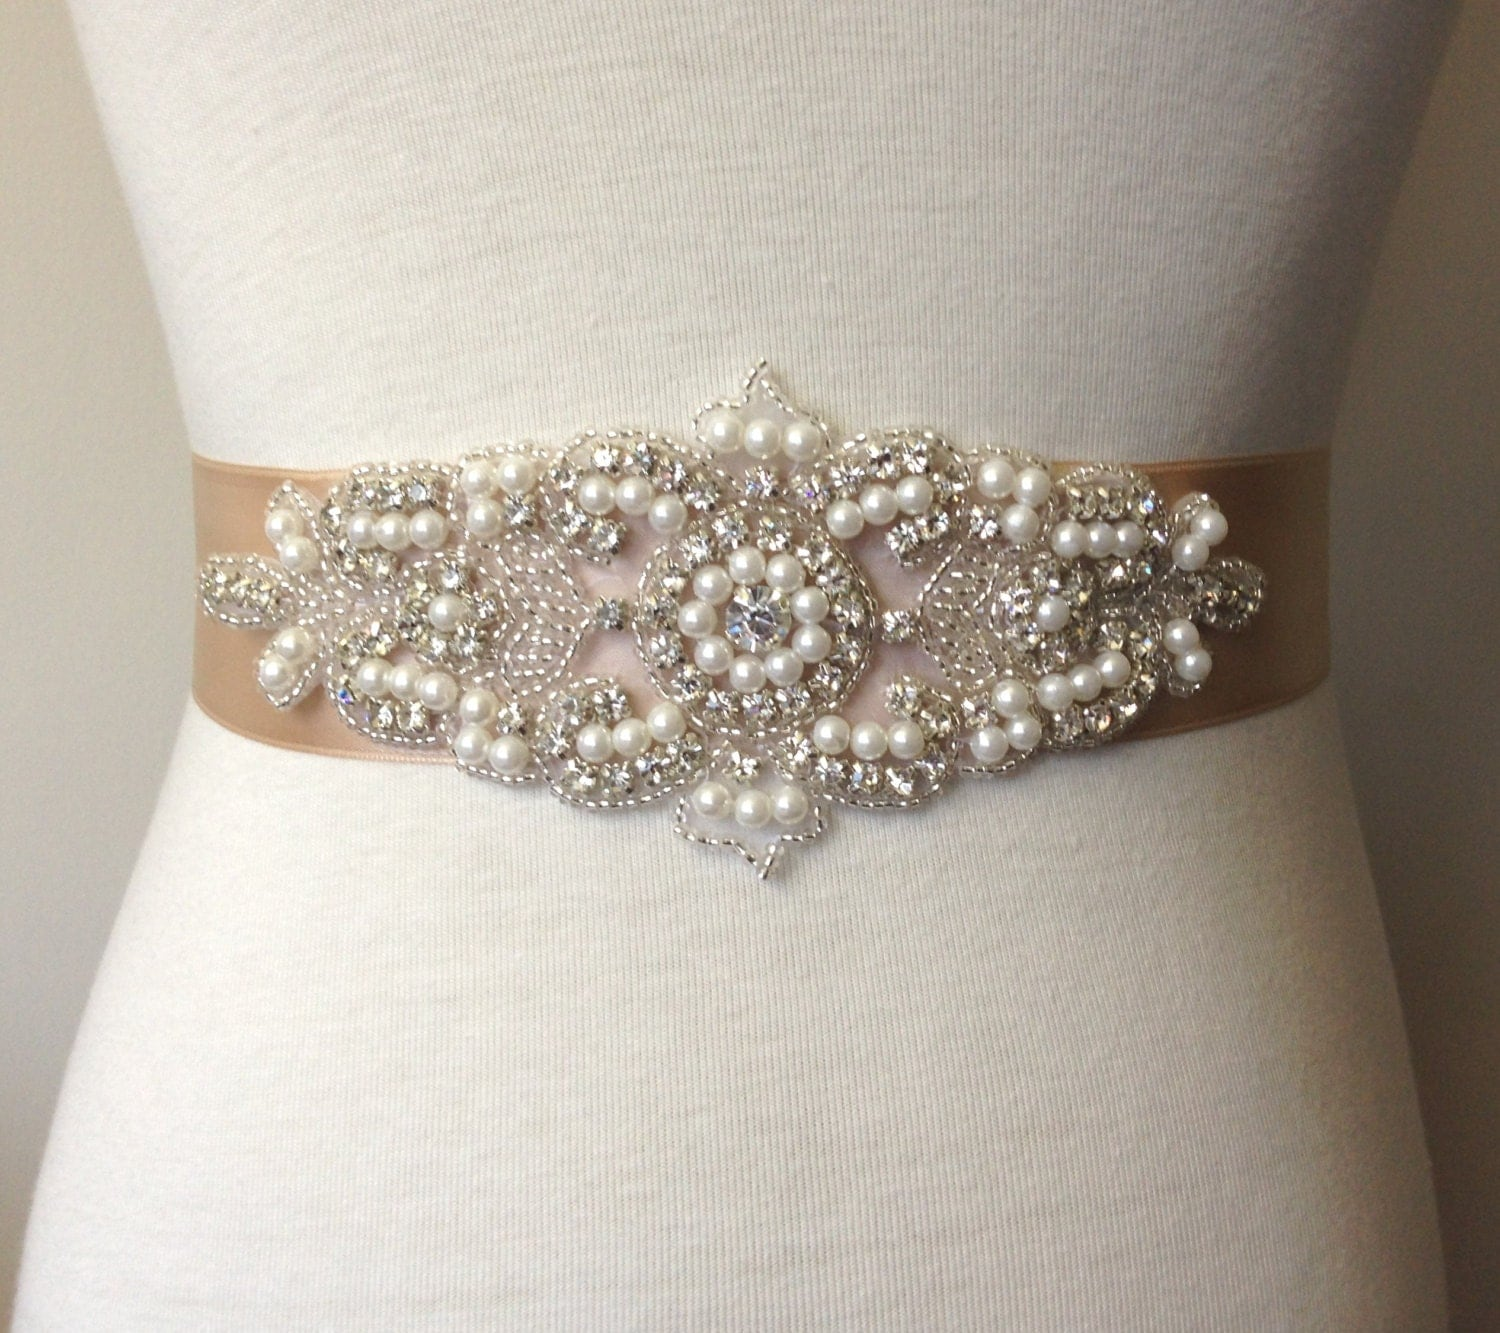 Champagne sash champagne belt rhinestone belt bridal for Belts for wedding dress